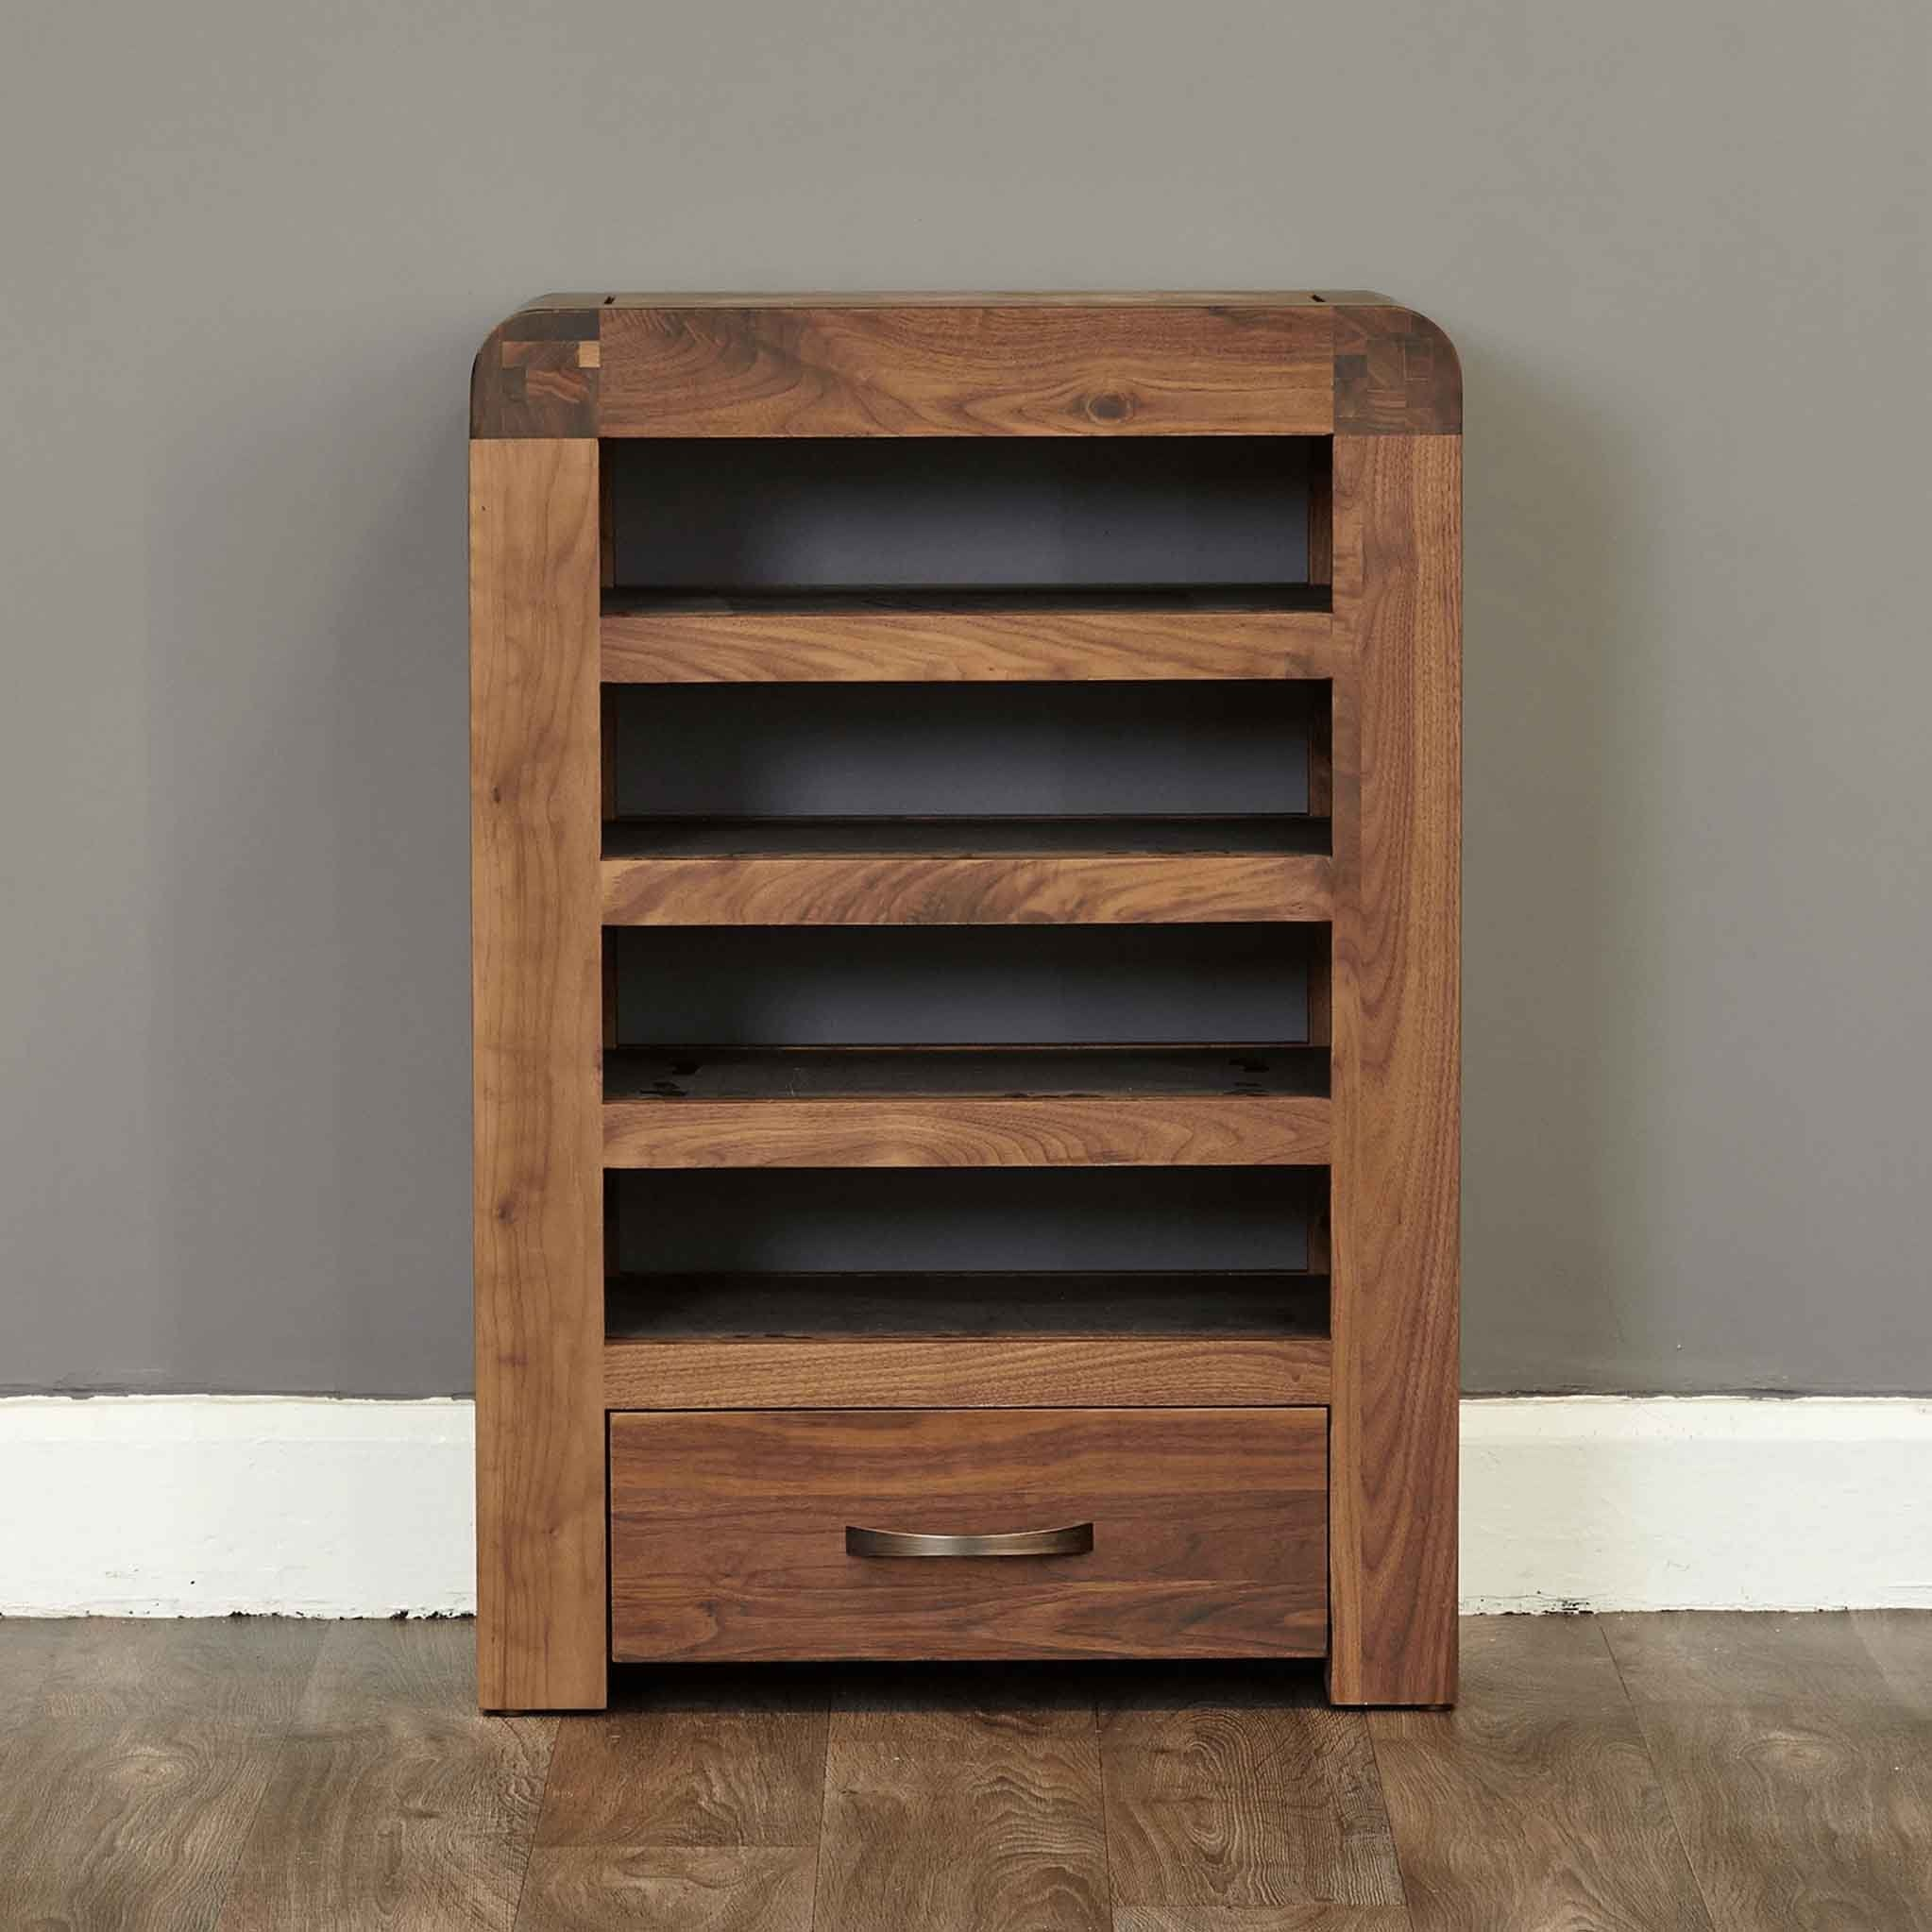 Bookcases Home Garden Store 25 X 75 X 80 Cm Roseland Furniture Prussia Acacia Low Bookcase With Adjustable Shelves Solid Dark Wood Brown